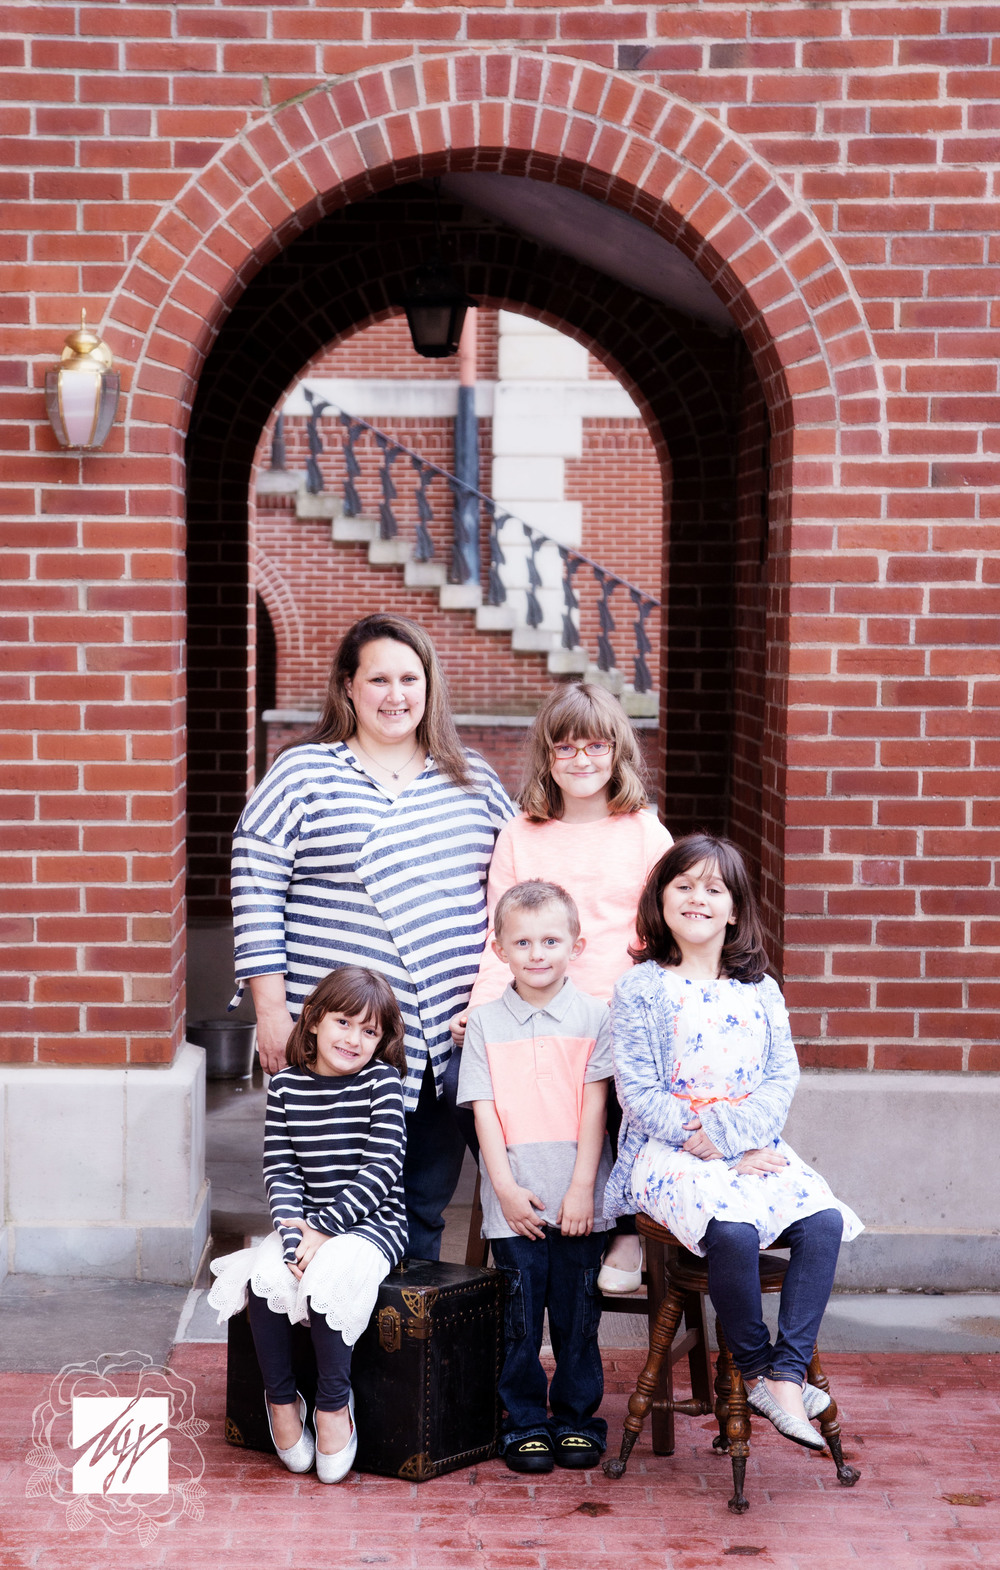 """To see more images of the Dyerson family, go to the """"Client Access"""" tab and enter their viewing gallery!"""